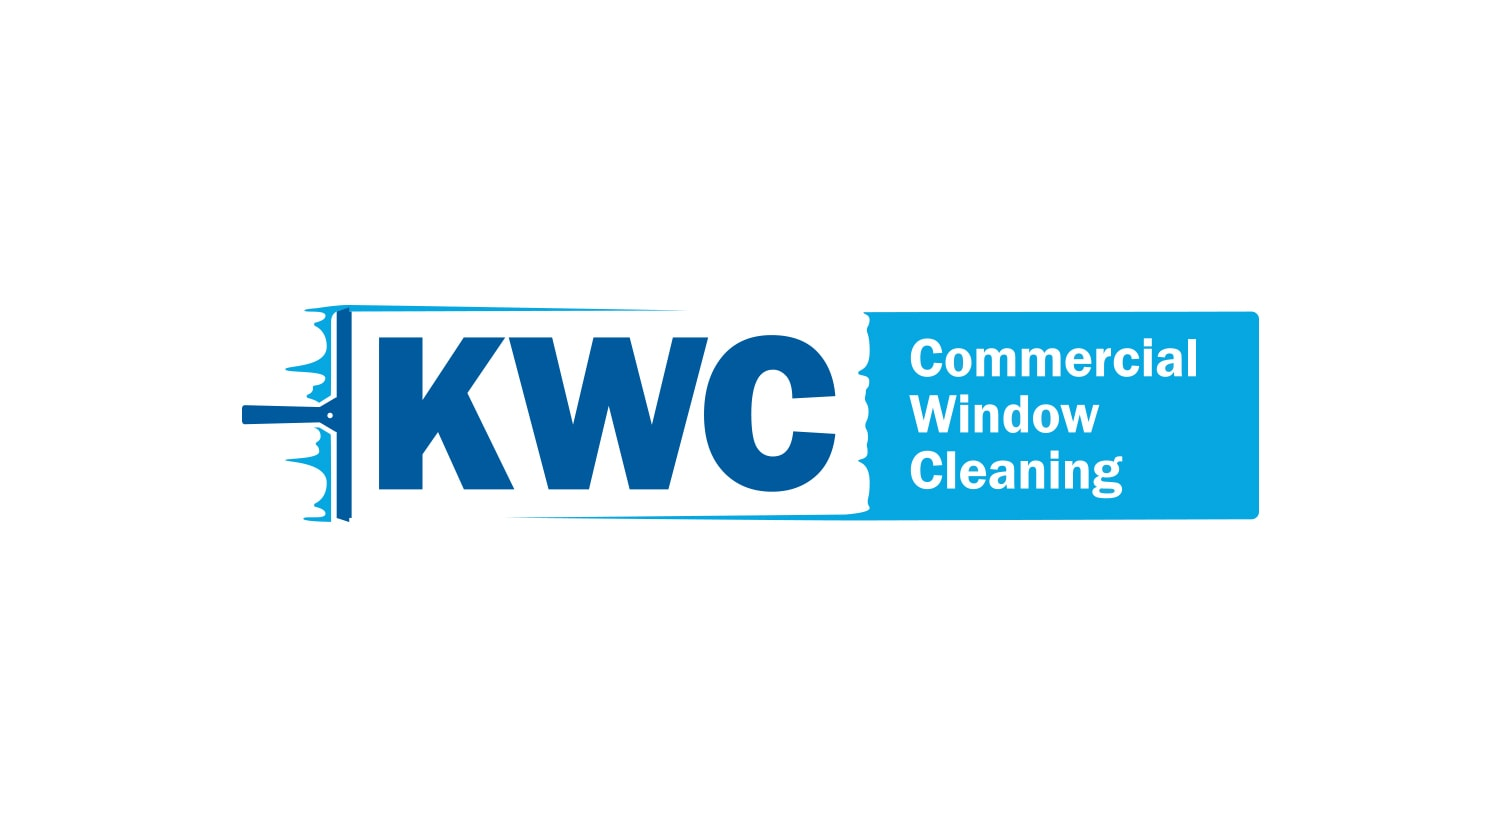 KWC Commercial Window Cleaning Logo